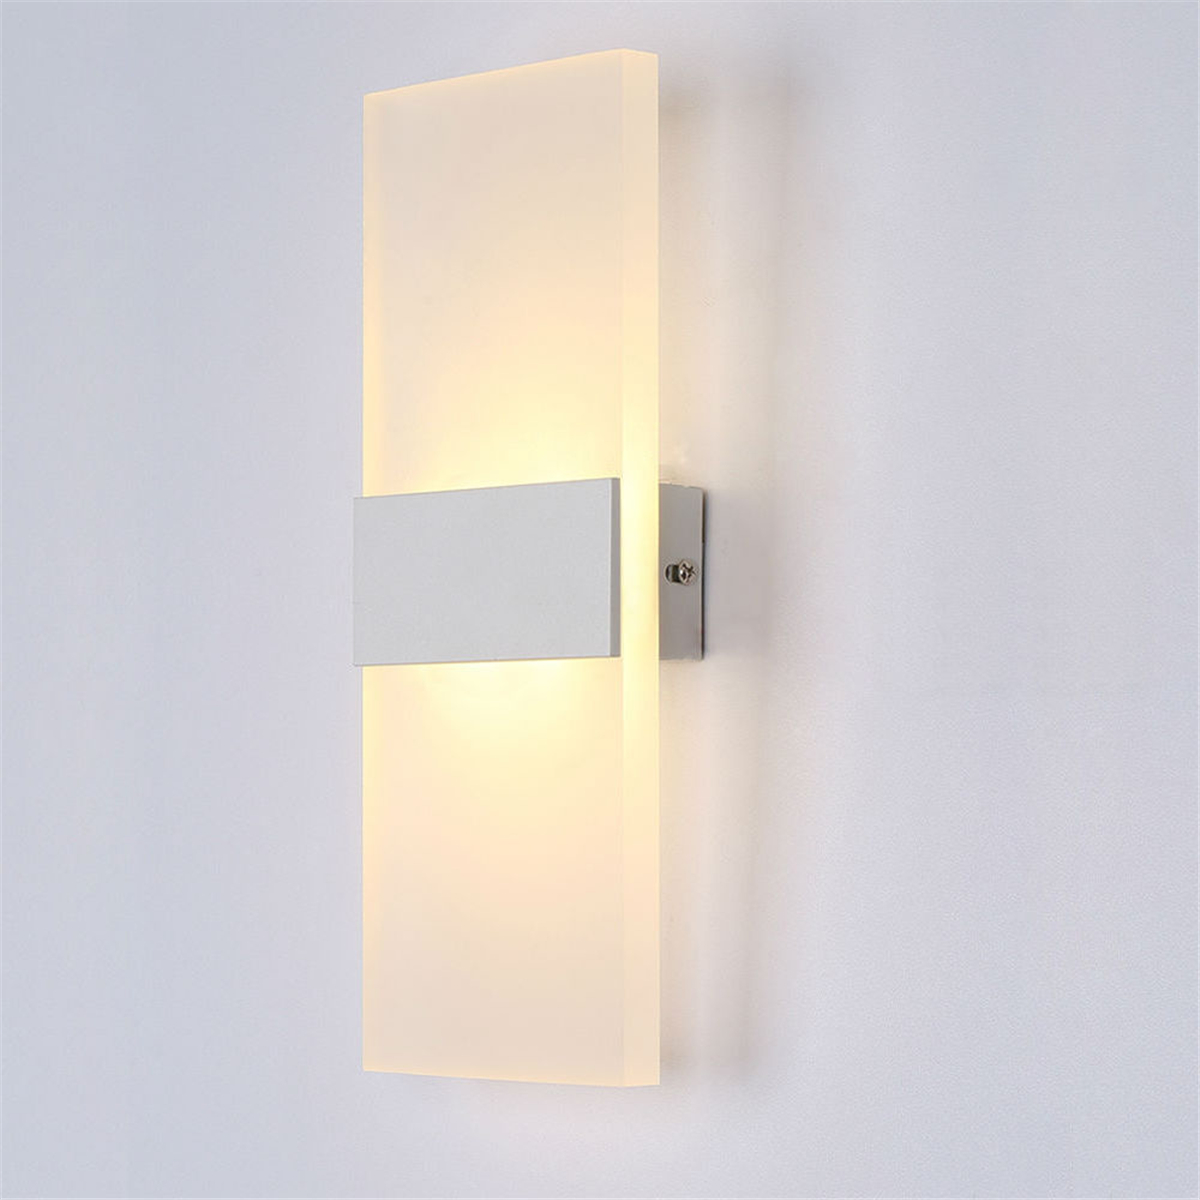 S/M/L Modern LED Round/Square Wall Light Simple Soft Bedroom Headlight Night Bedside Lamp AC100-240V Warm White Cool White